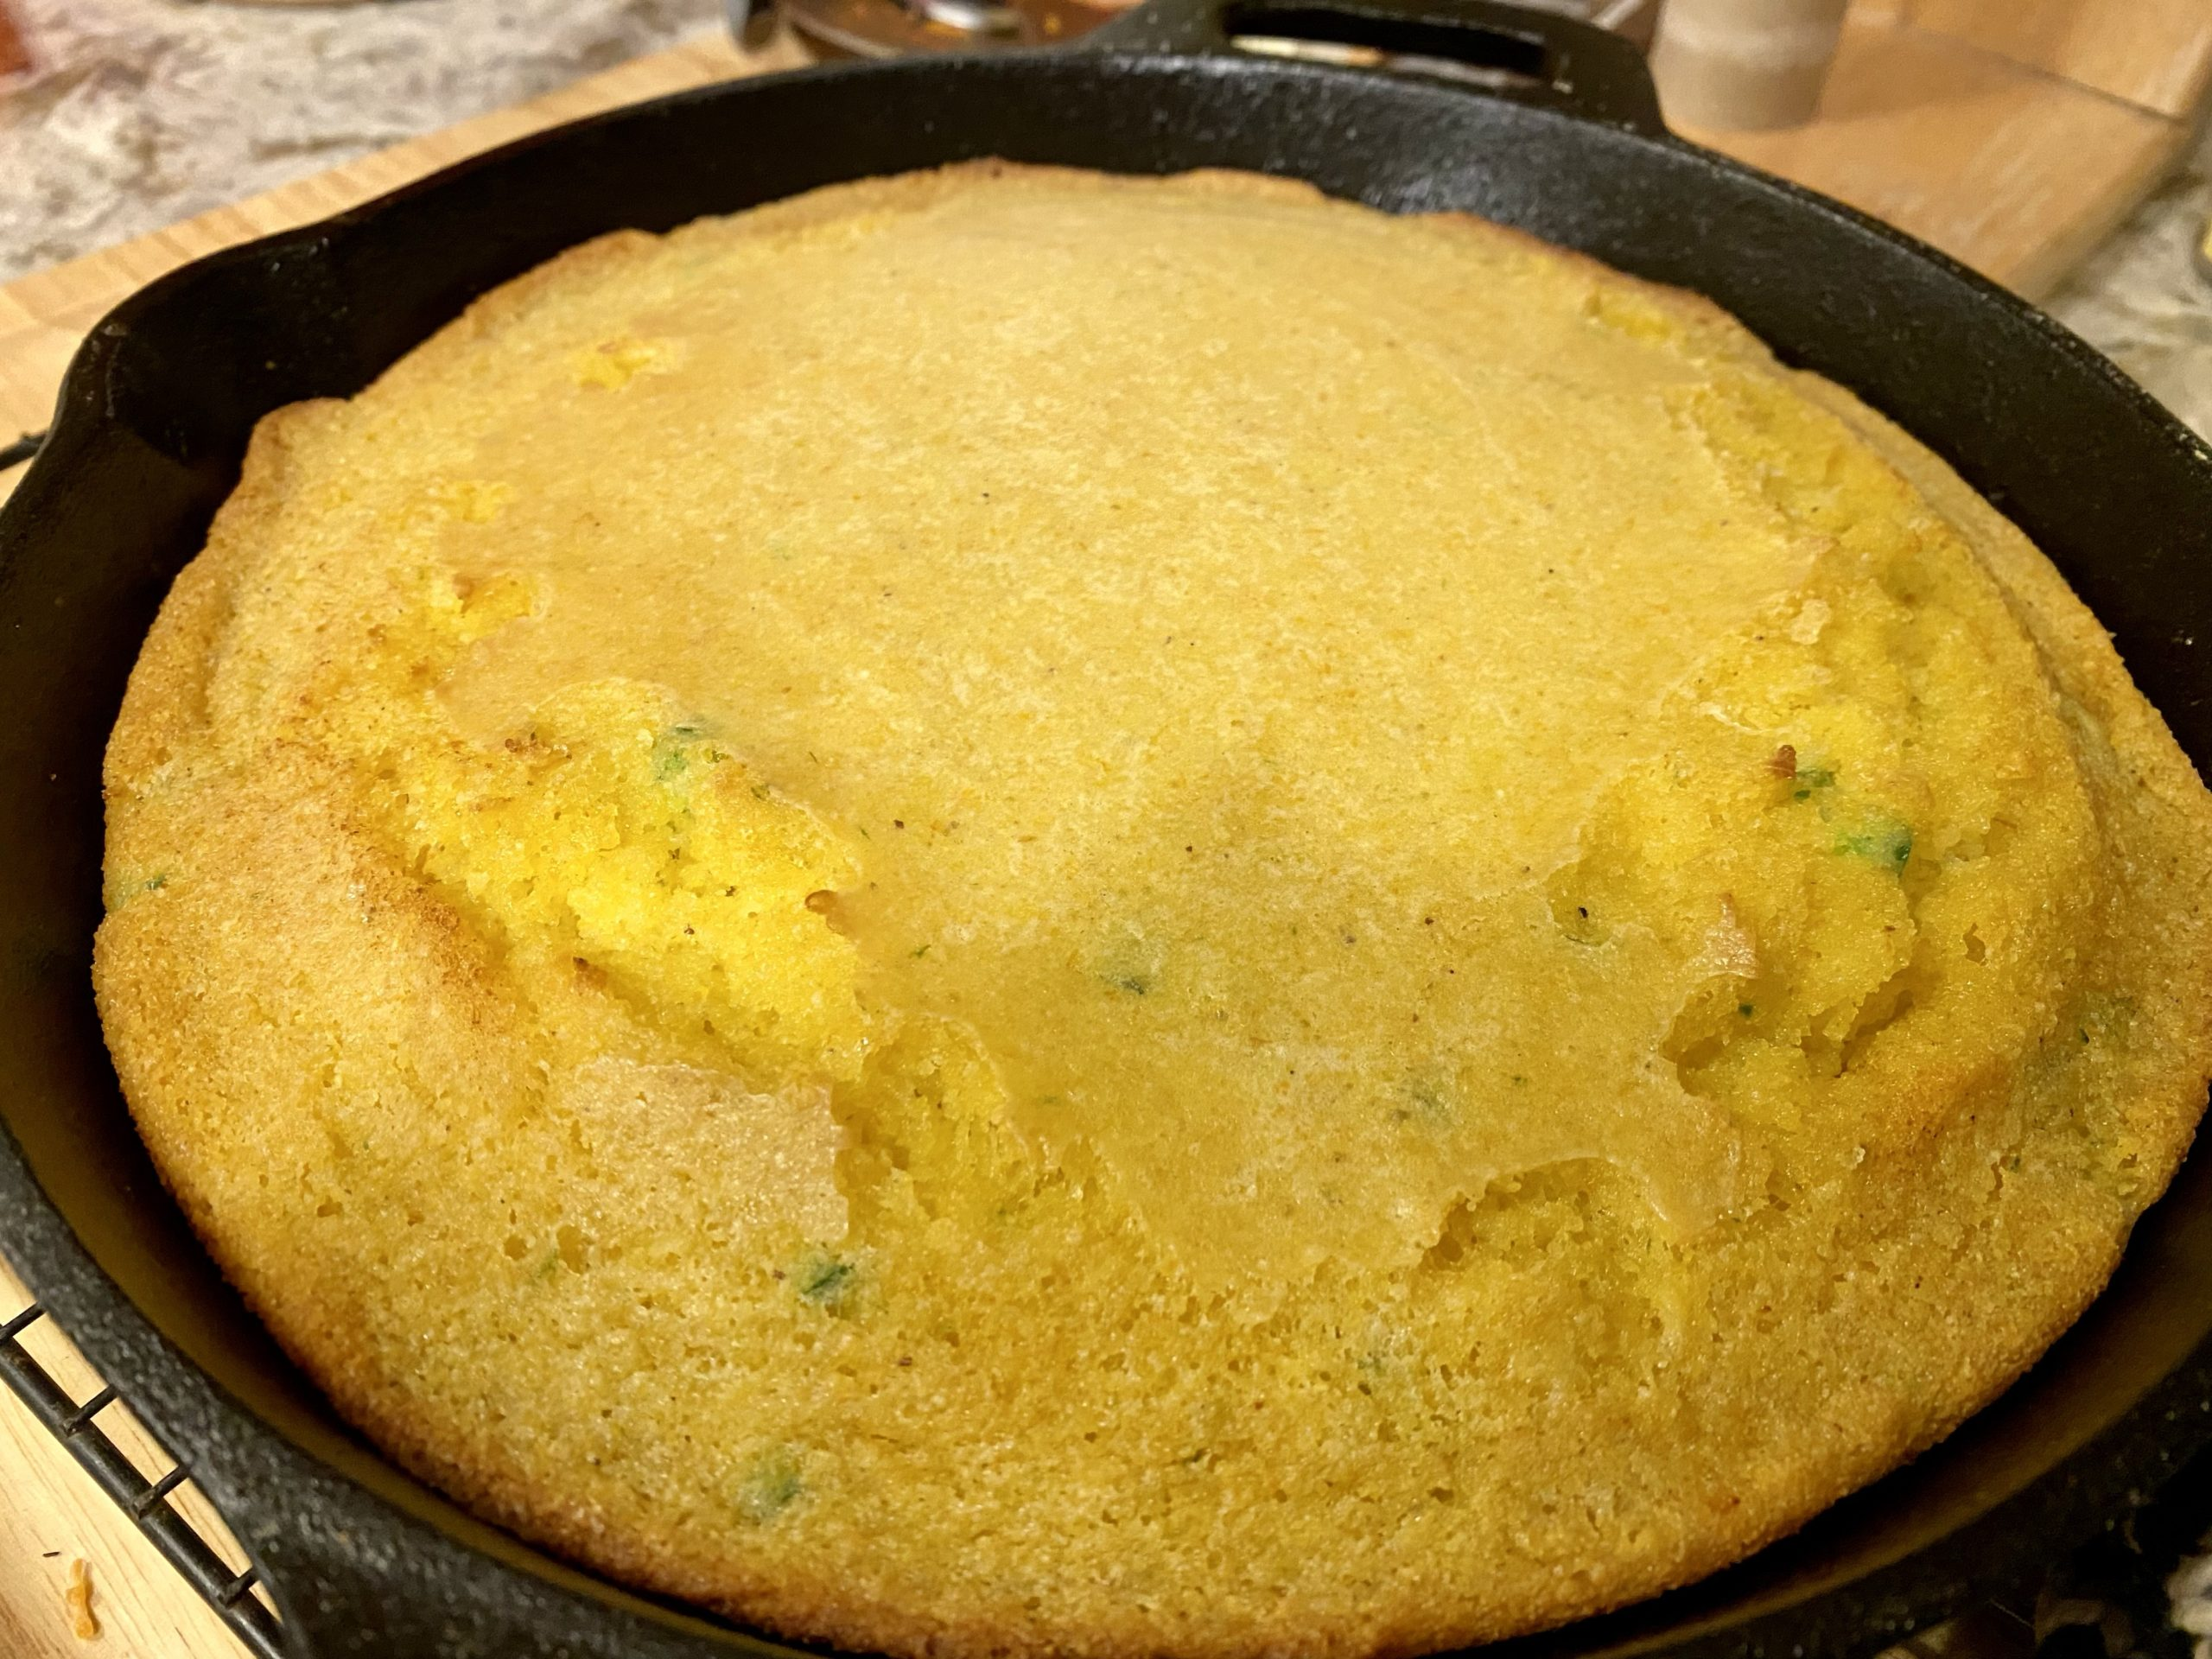 A photo of cooked cornbread in a cast iron skillet